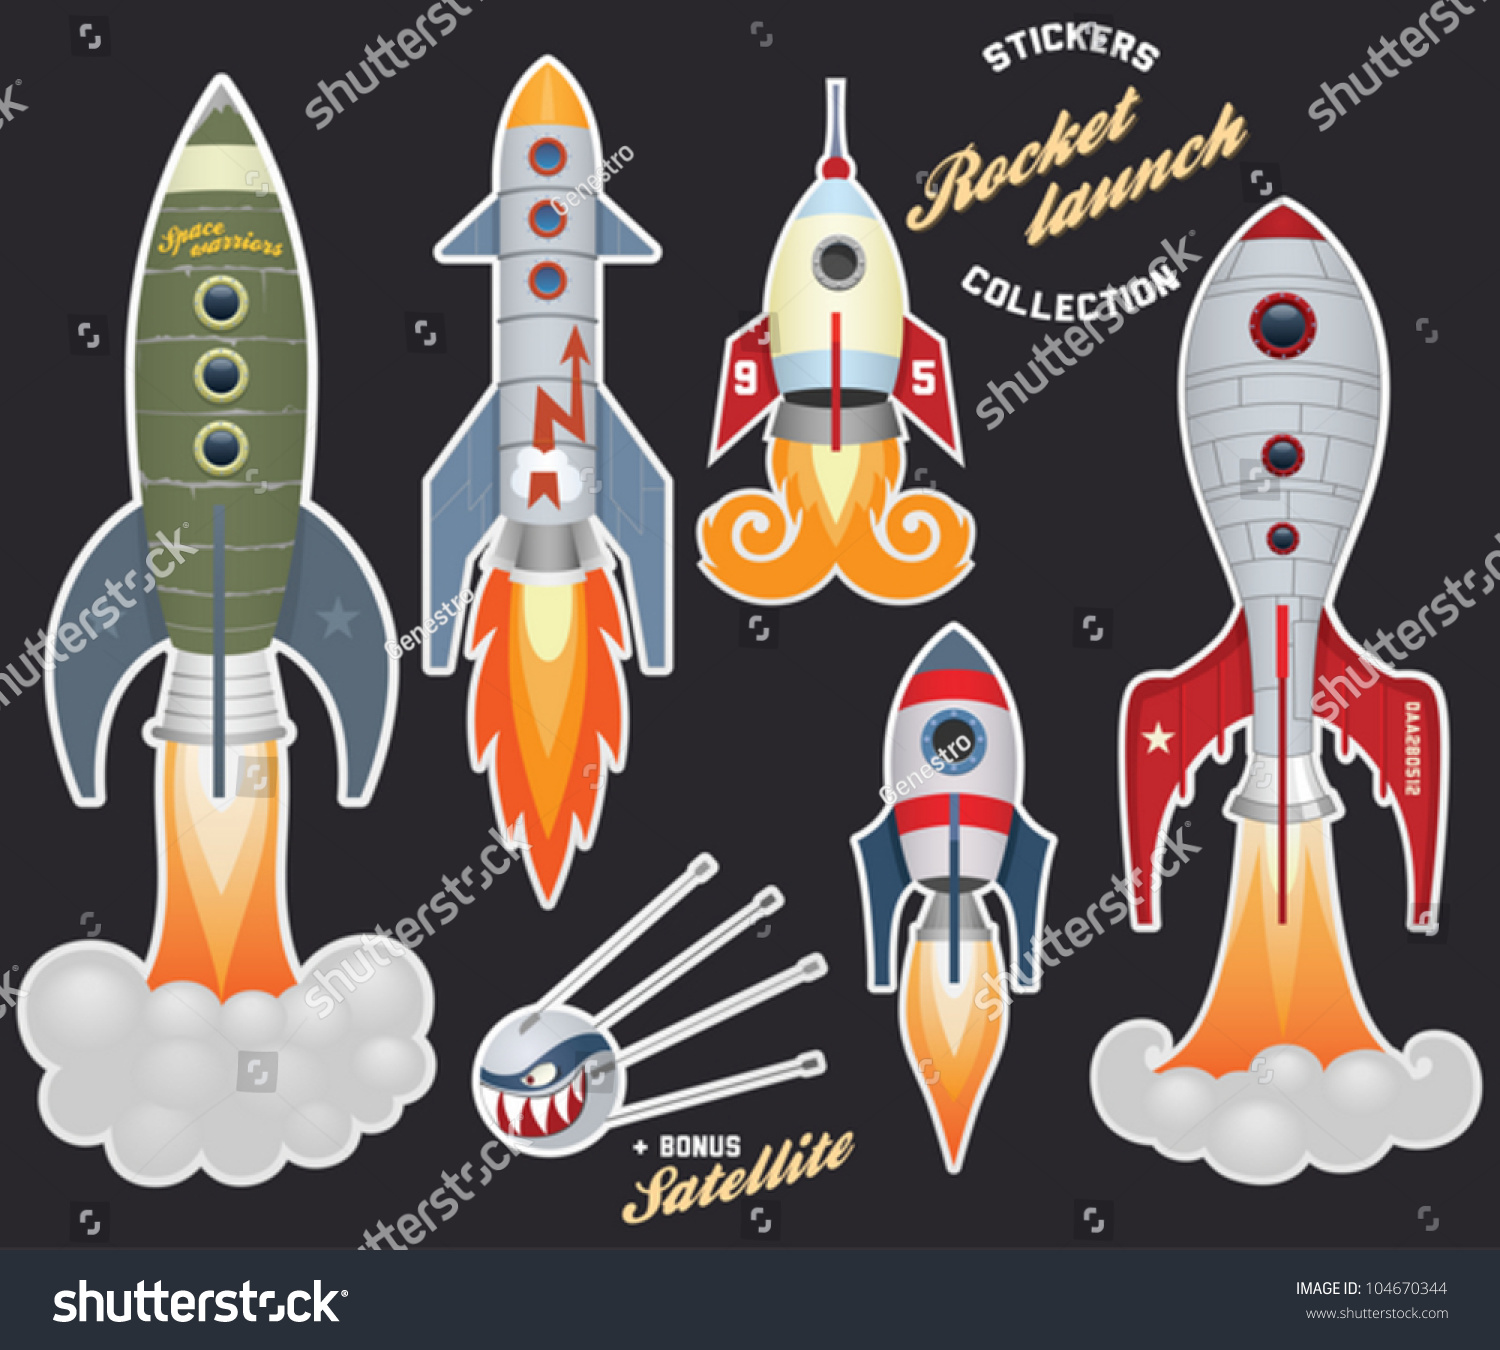 rocket launch stickers collection stock vector illustration 104670344 shutterstock. Black Bedroom Furniture Sets. Home Design Ideas